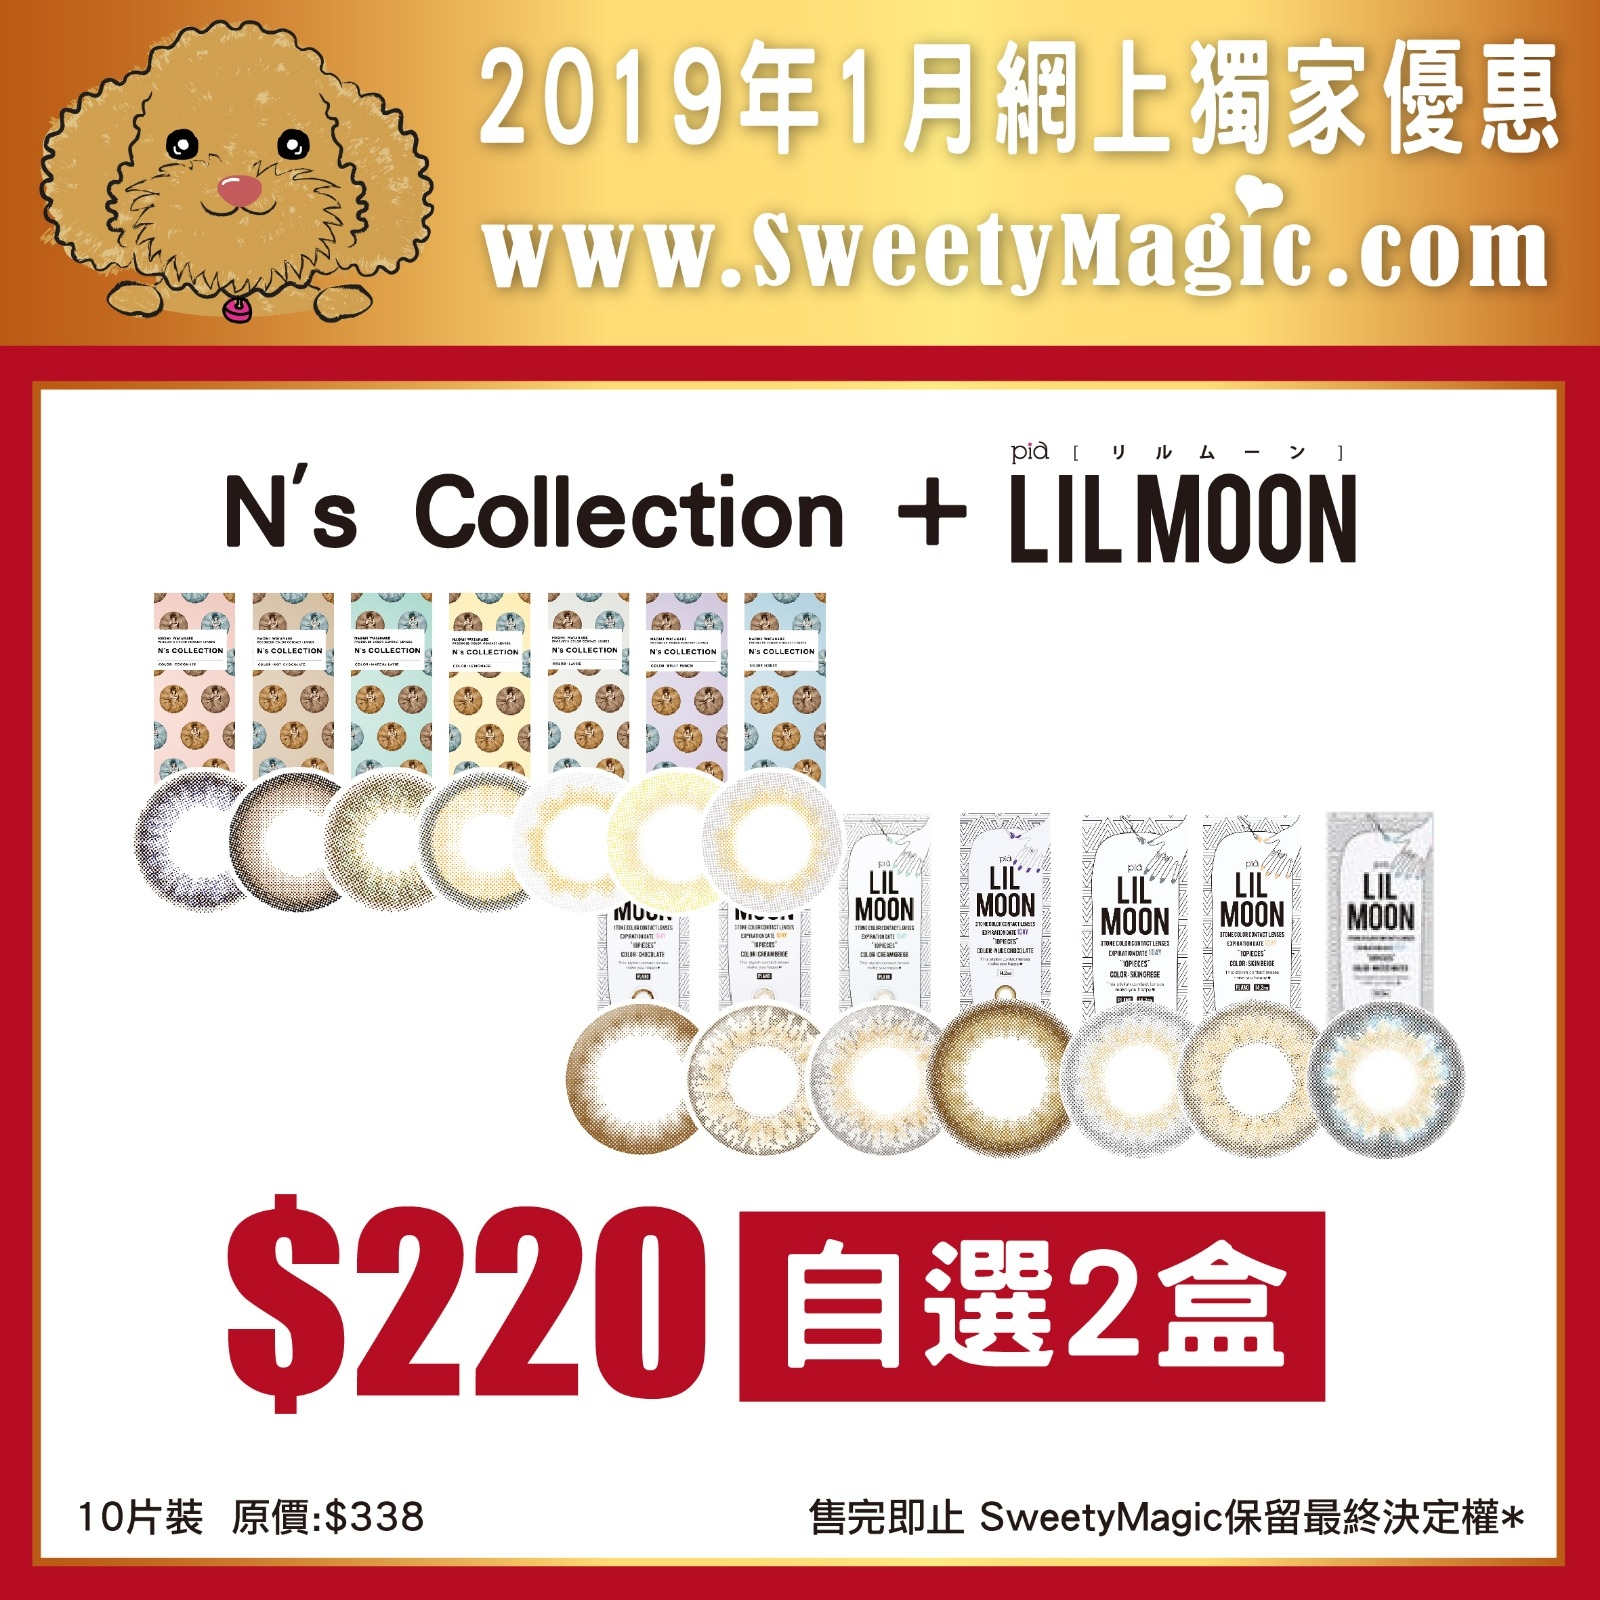 NSCOLLECTION,Lilmoon,con